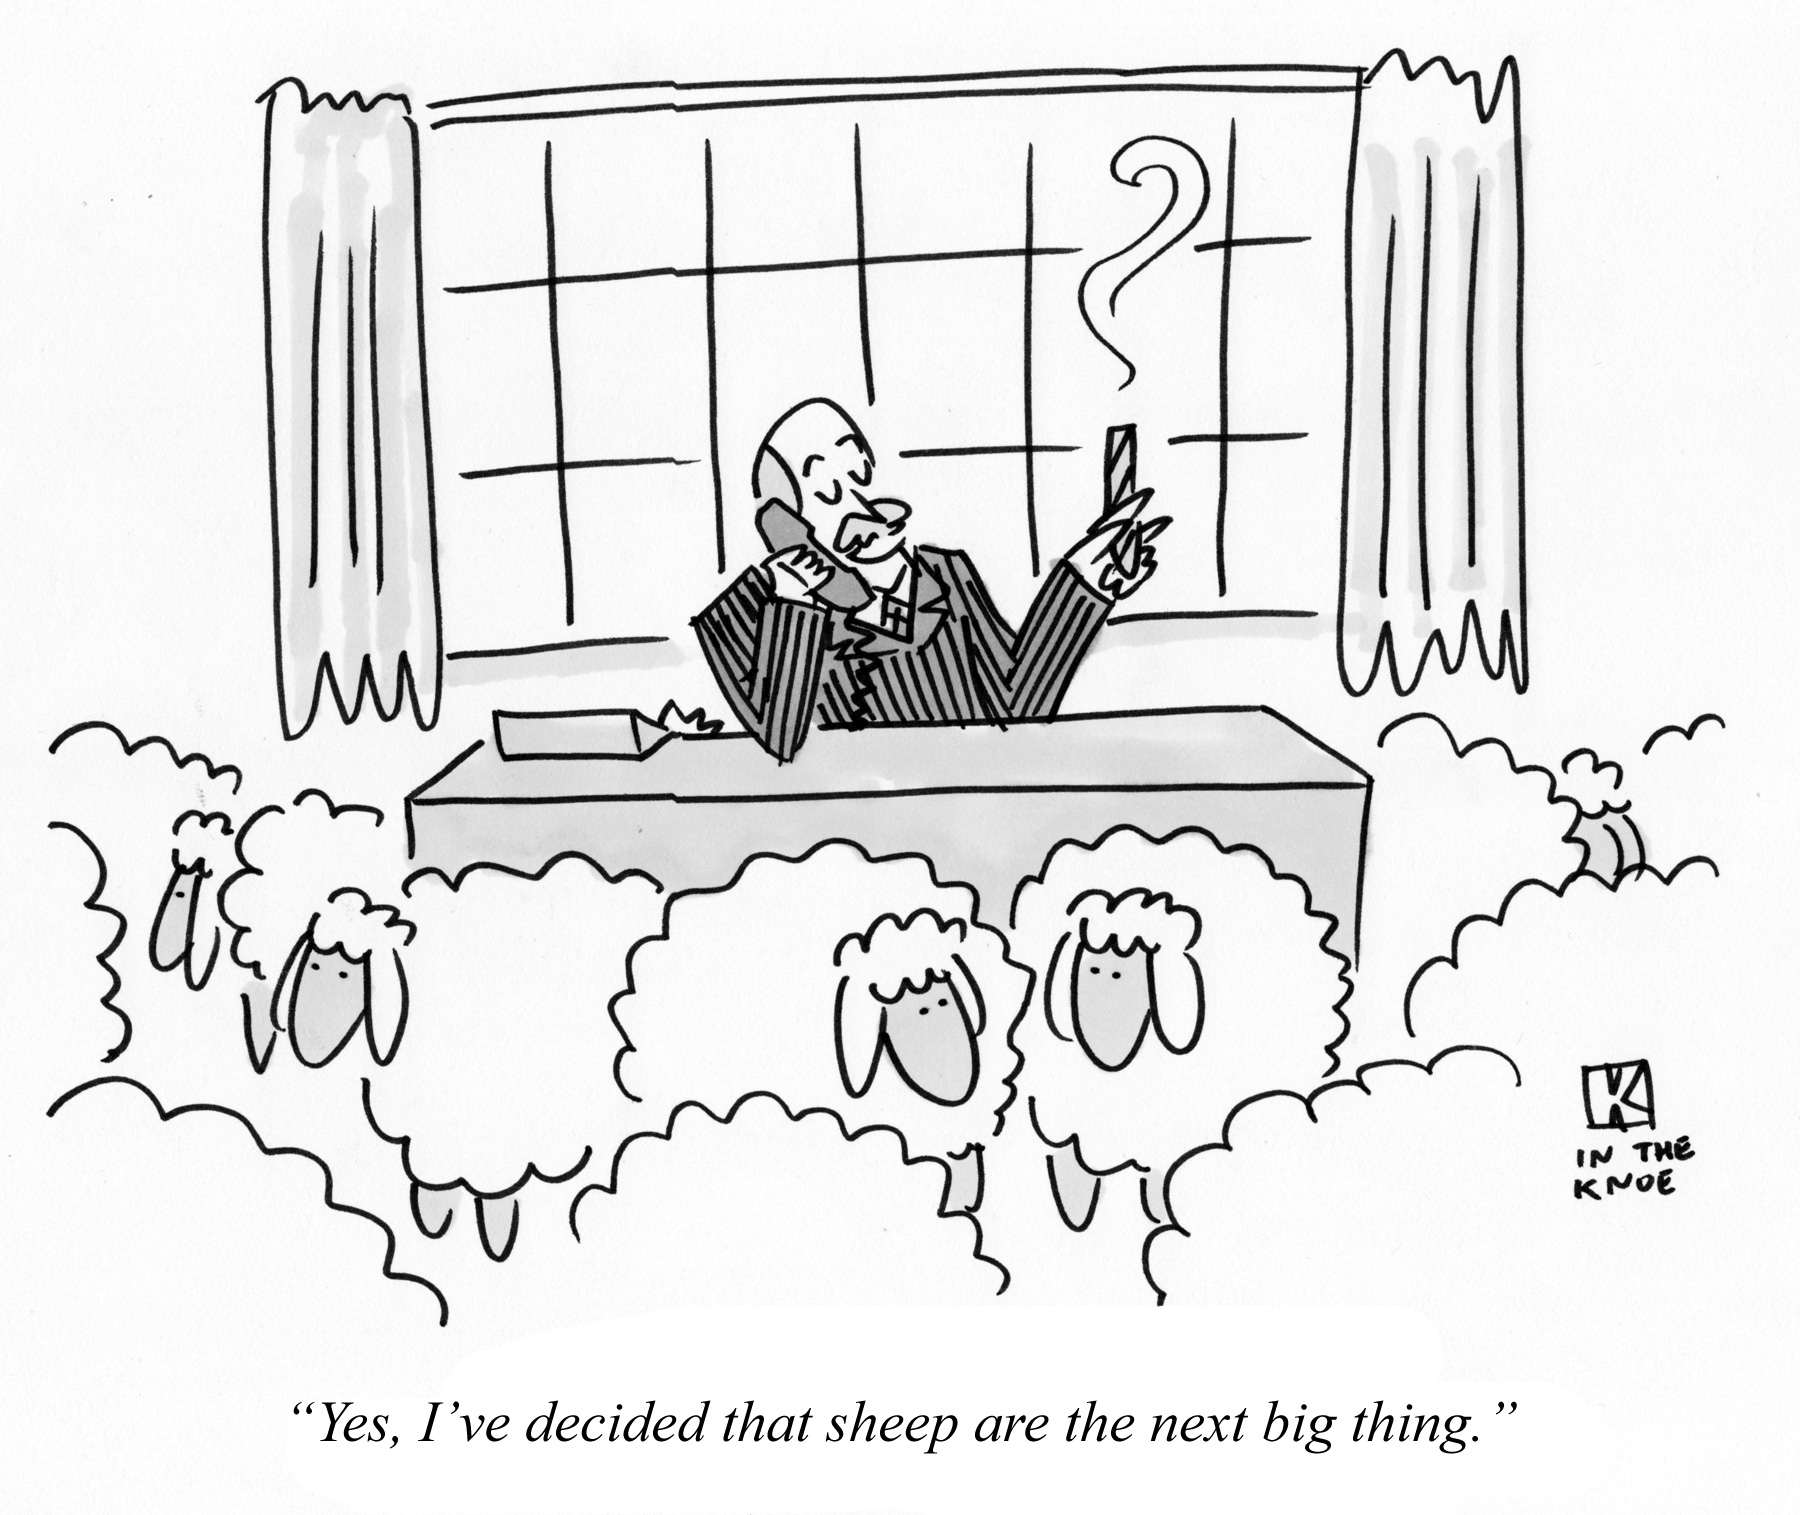 Yes, I've decided that sheep are the next big thing.